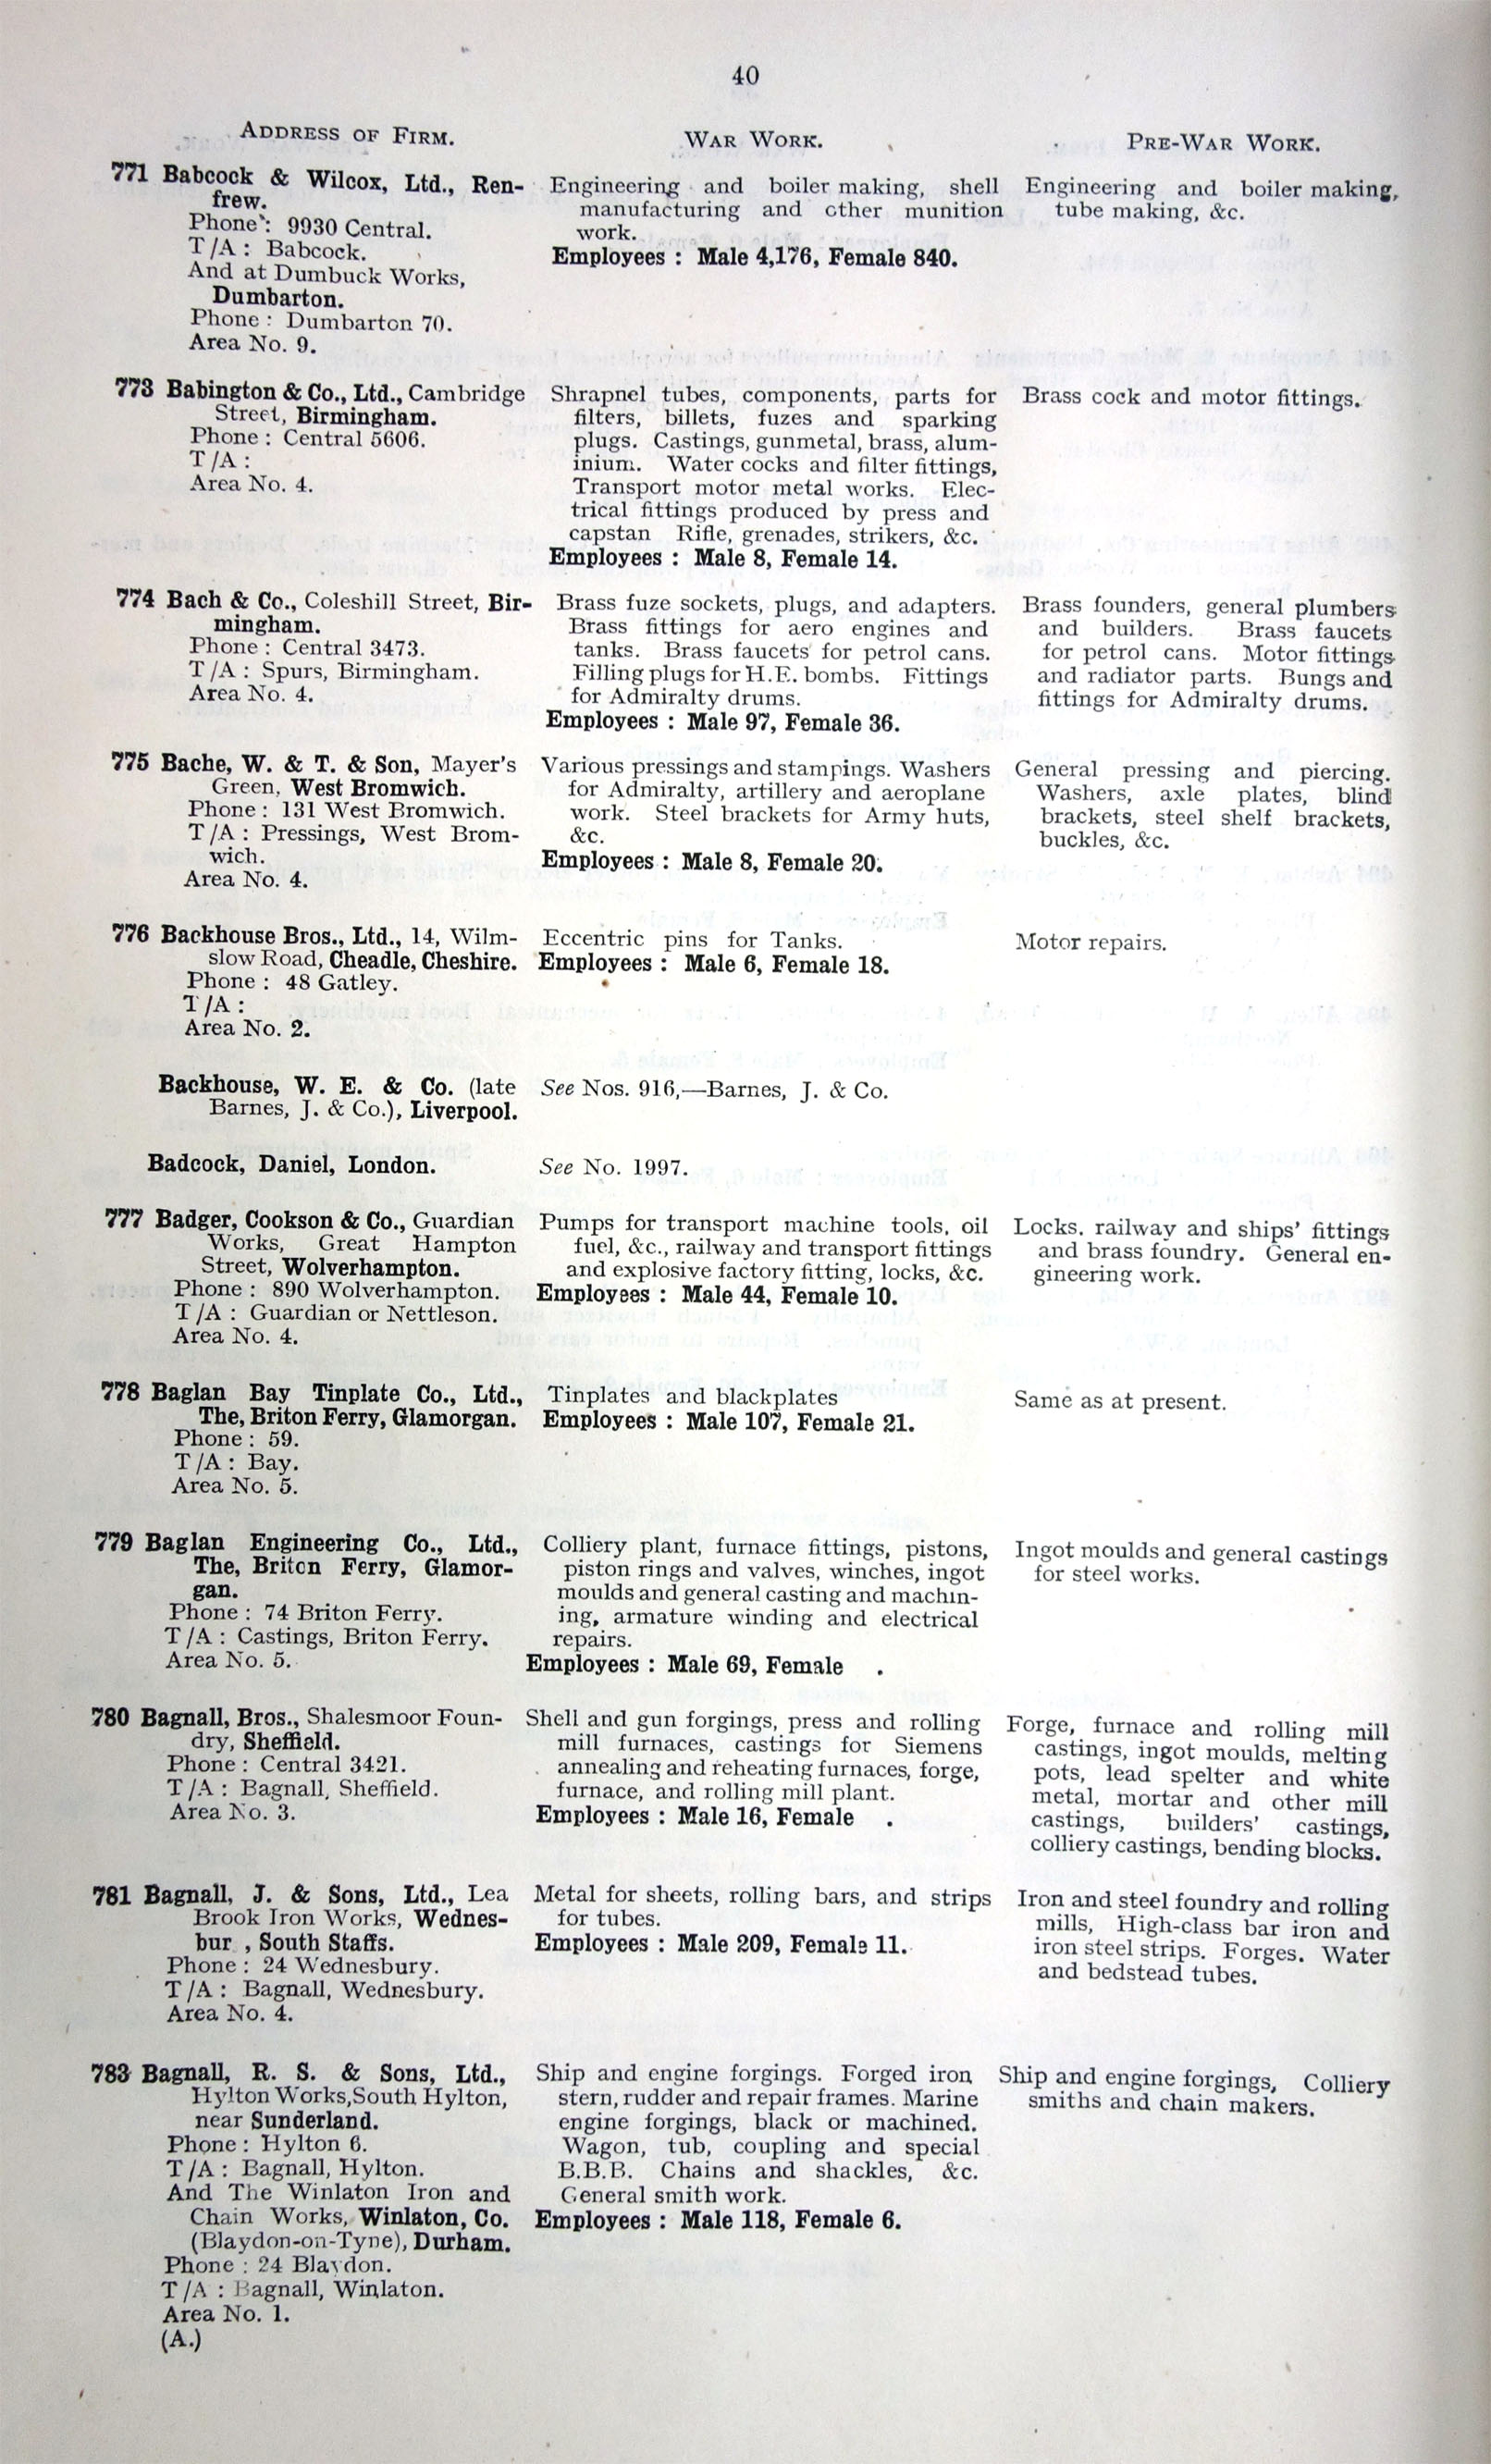 1918 Directory of Manufacturers in Engineering and Allied Trades: Company B